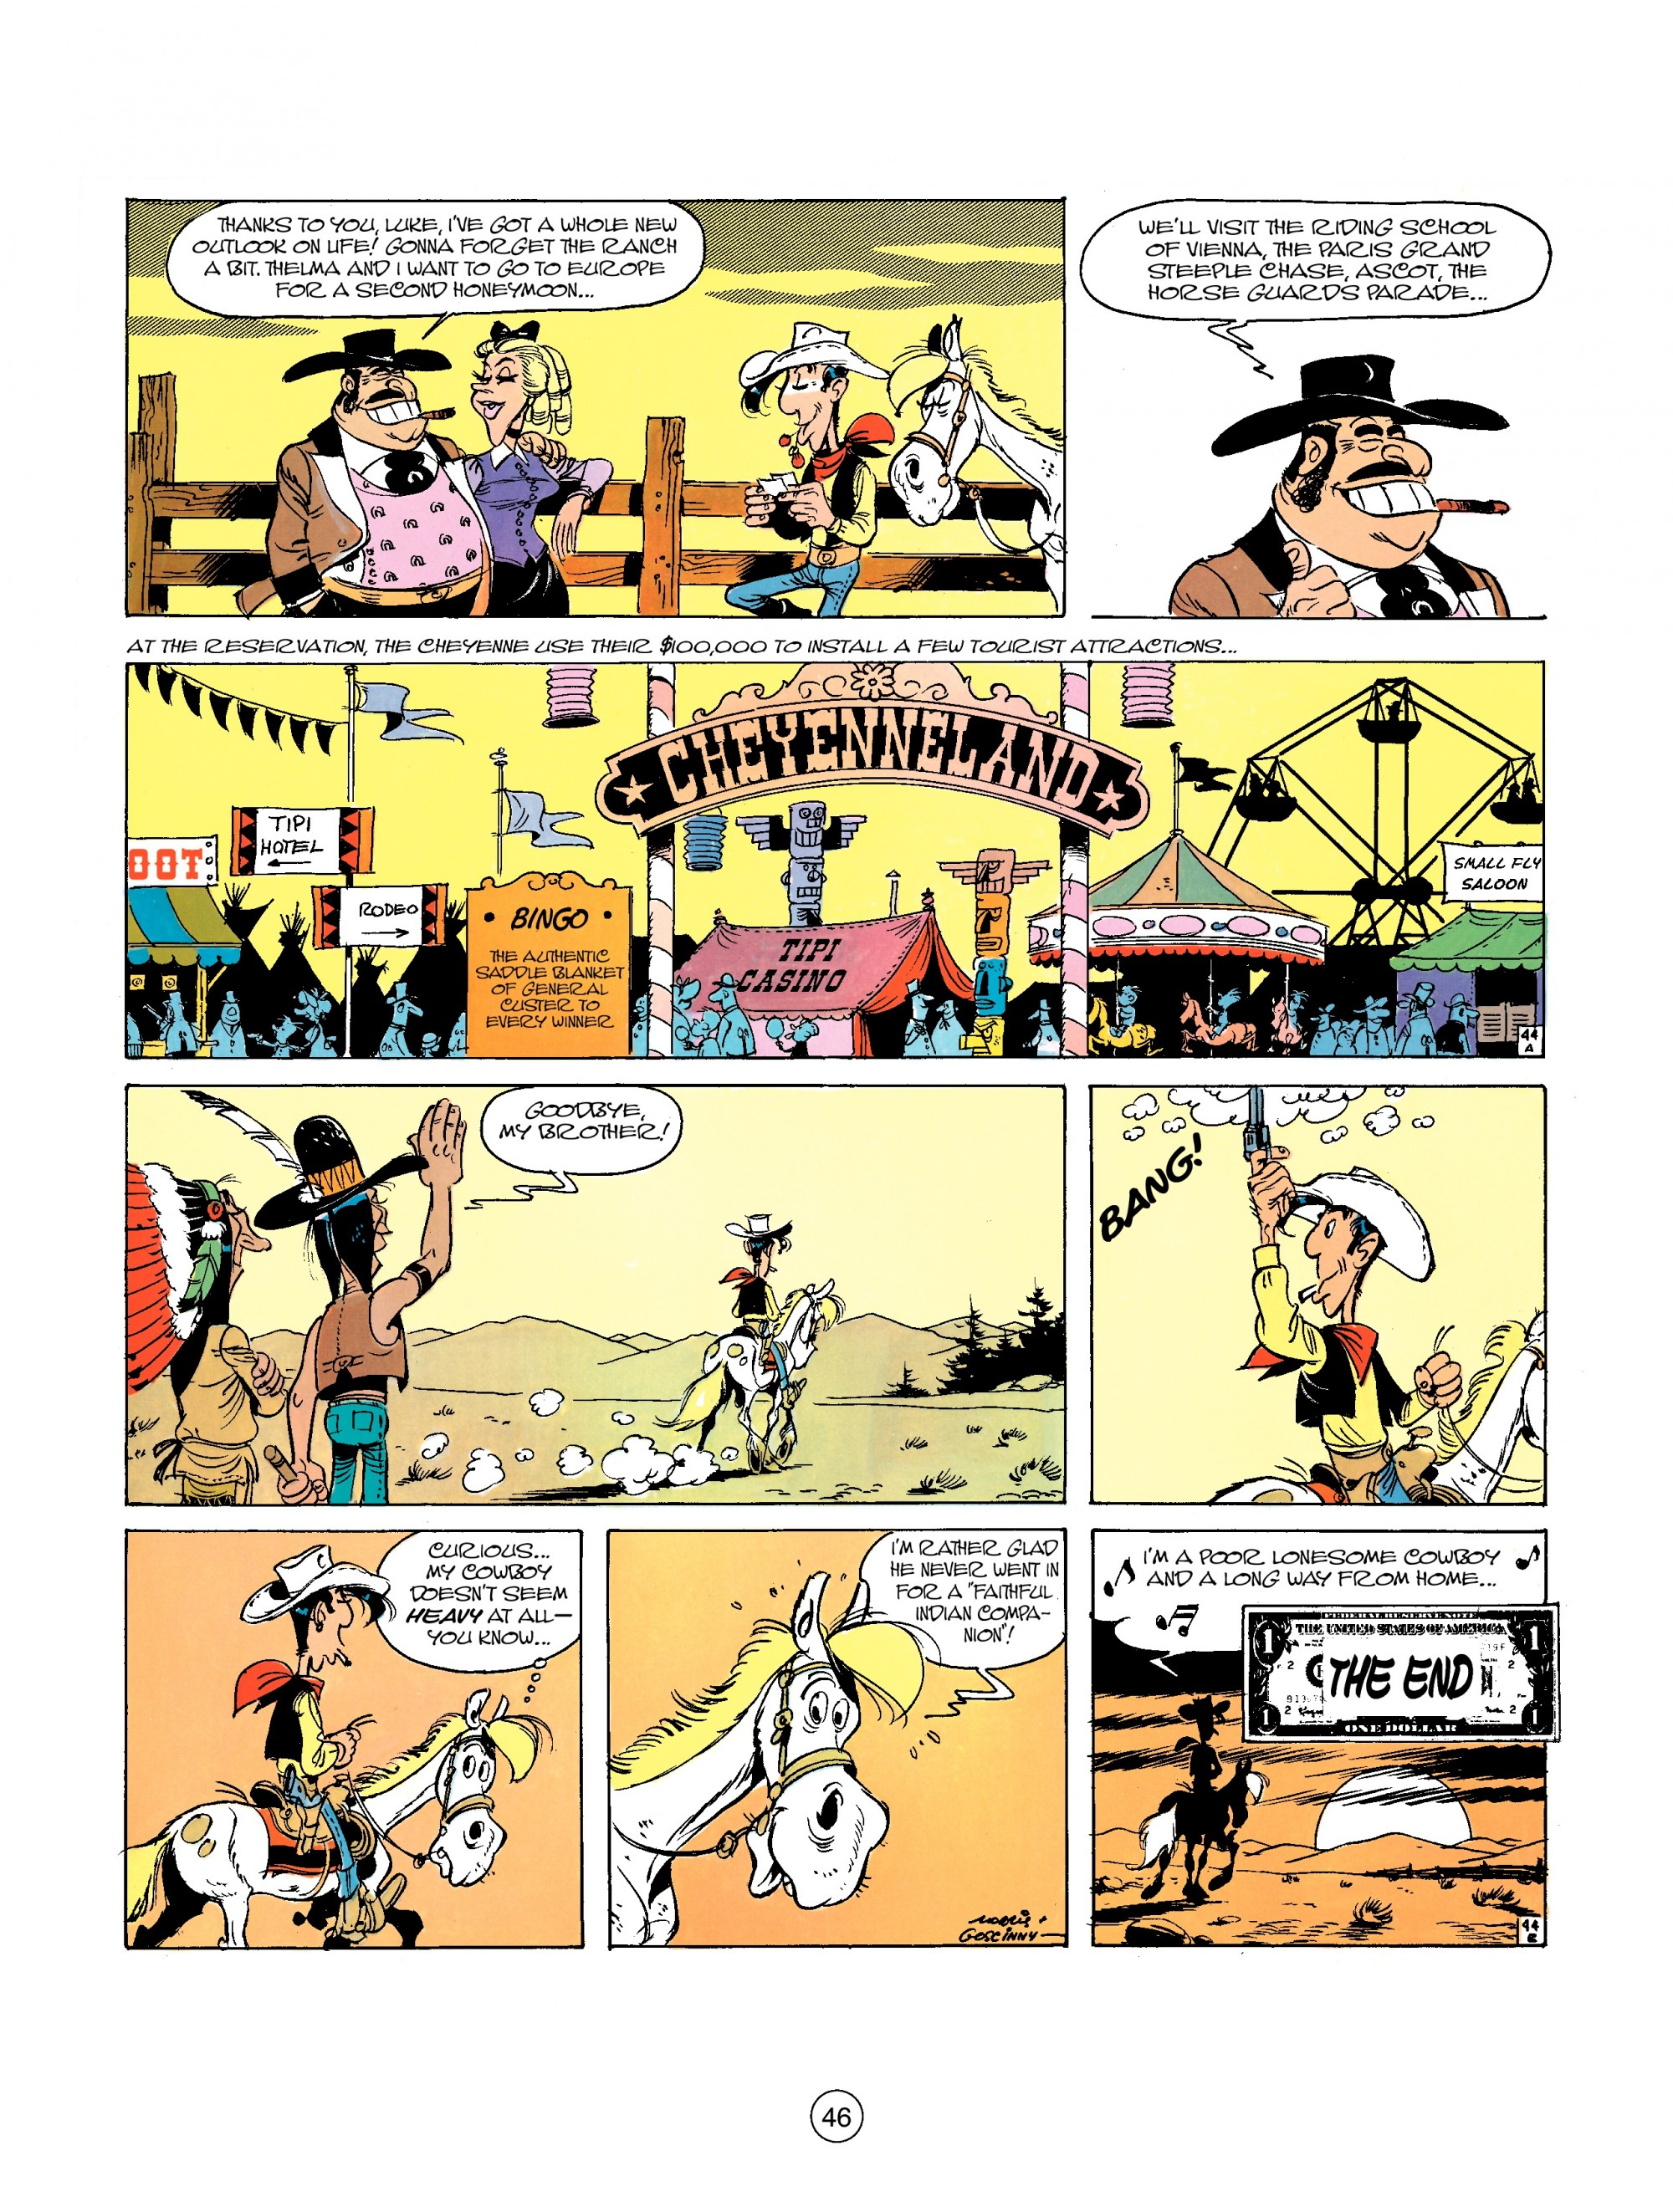 A Lucky Luke Adventure 26 Page 45